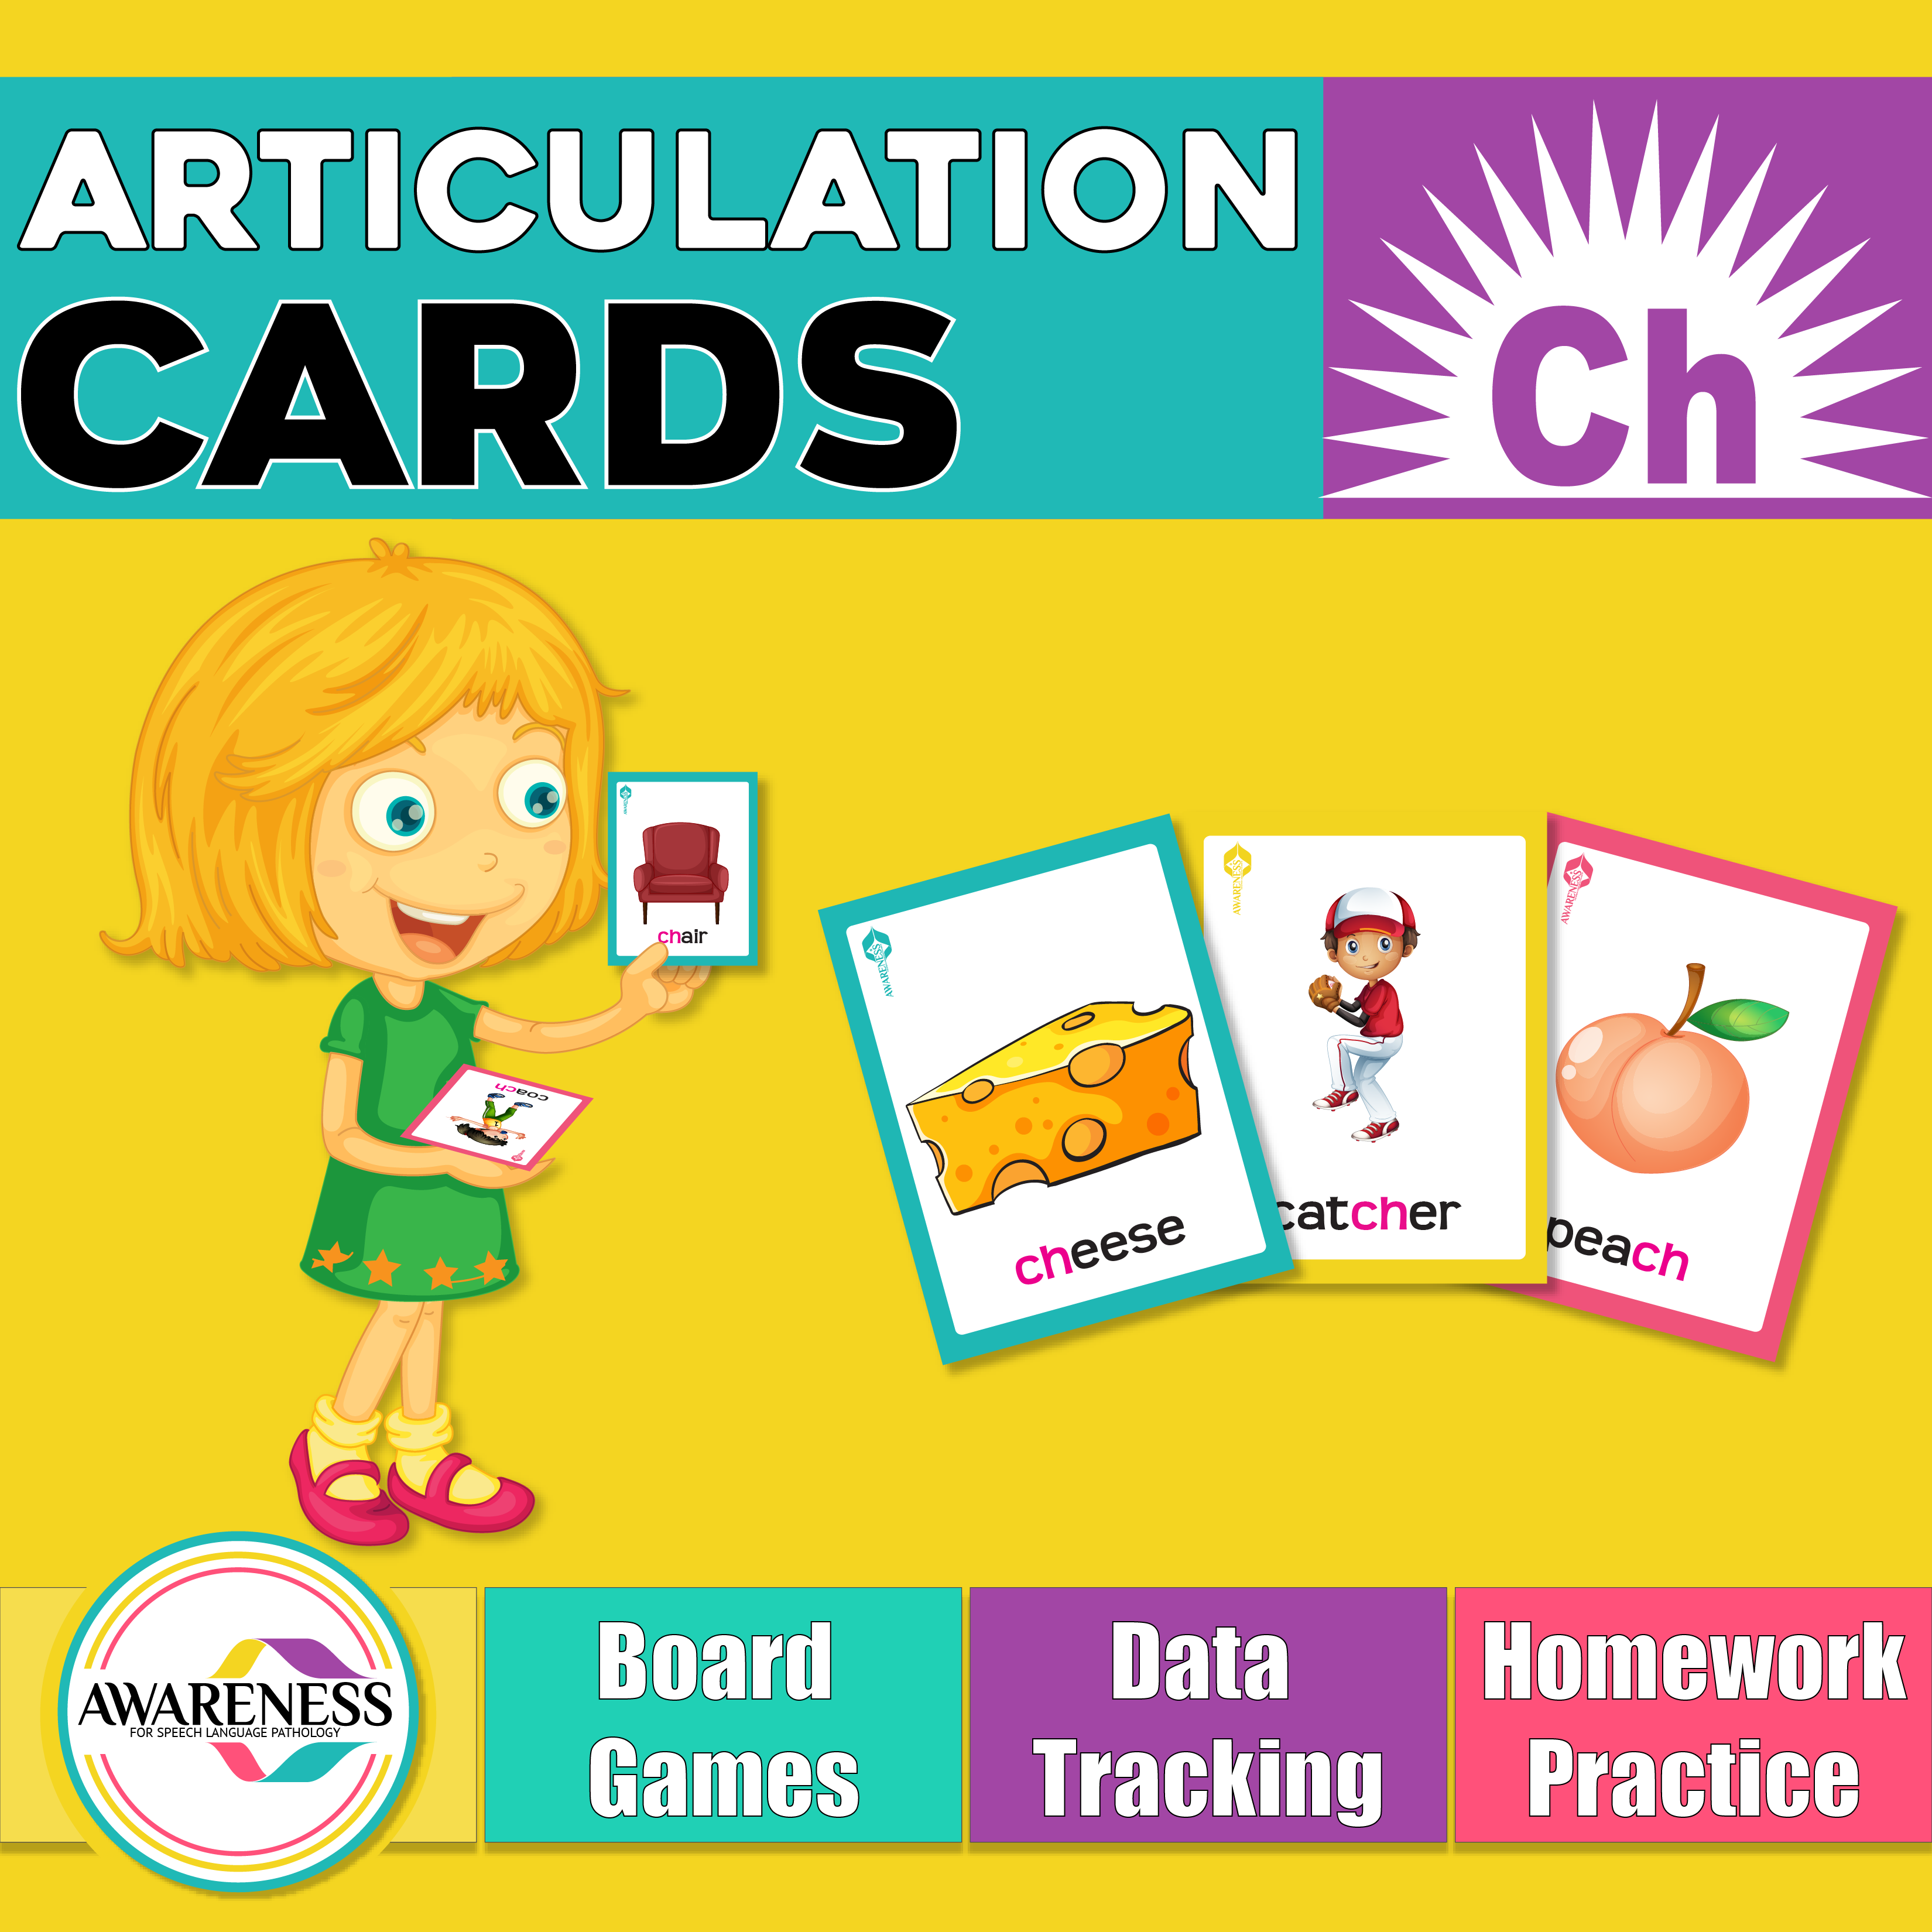 Ch Articulation Cards Worksheets And Activities For